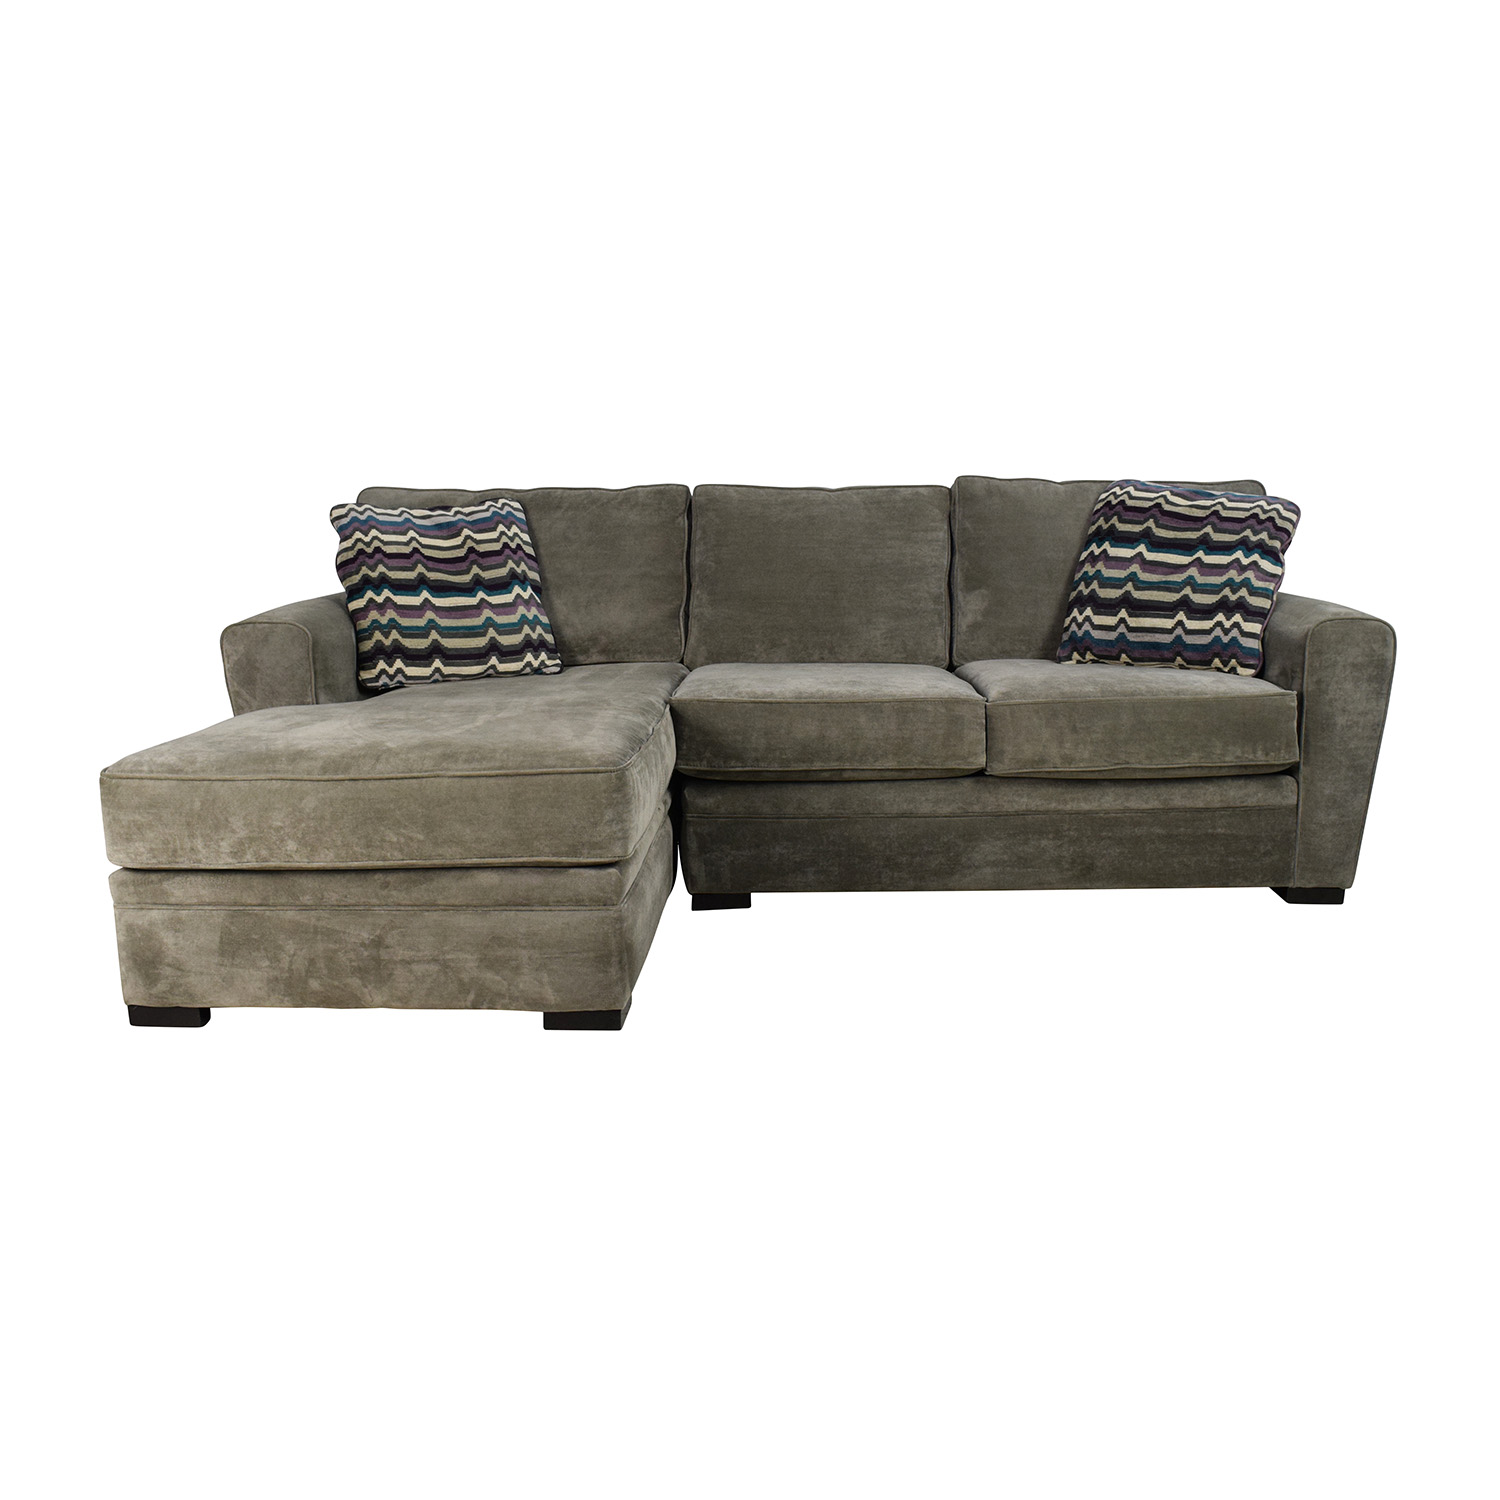 Microfiber sale for Microfiber sectional sofa